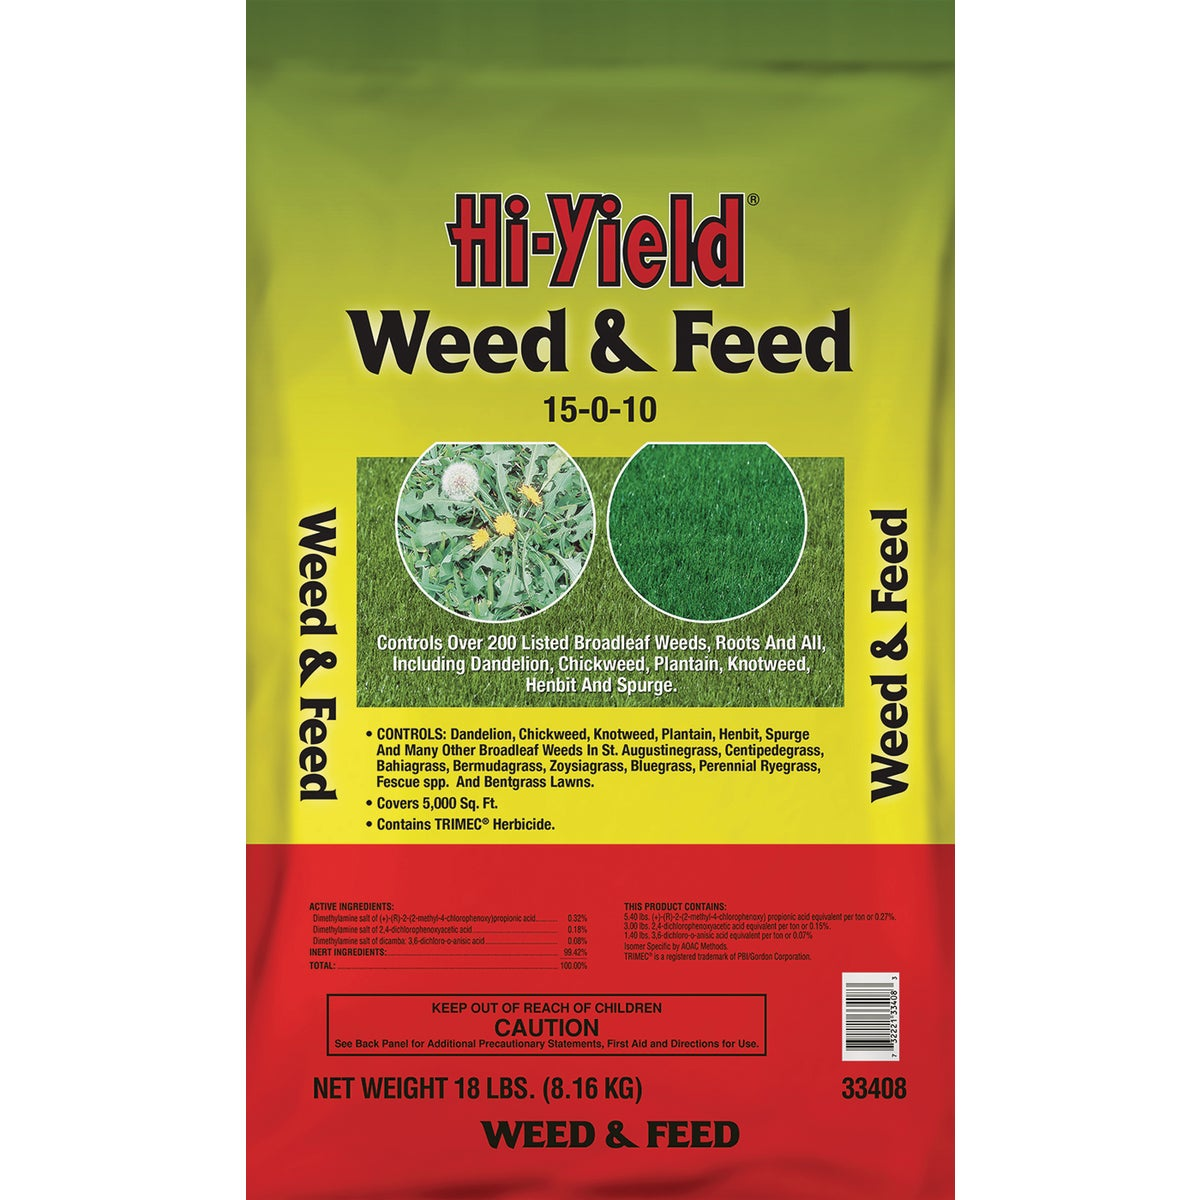 18LB WEED & FEED - 33408 by Vpg Fertilome